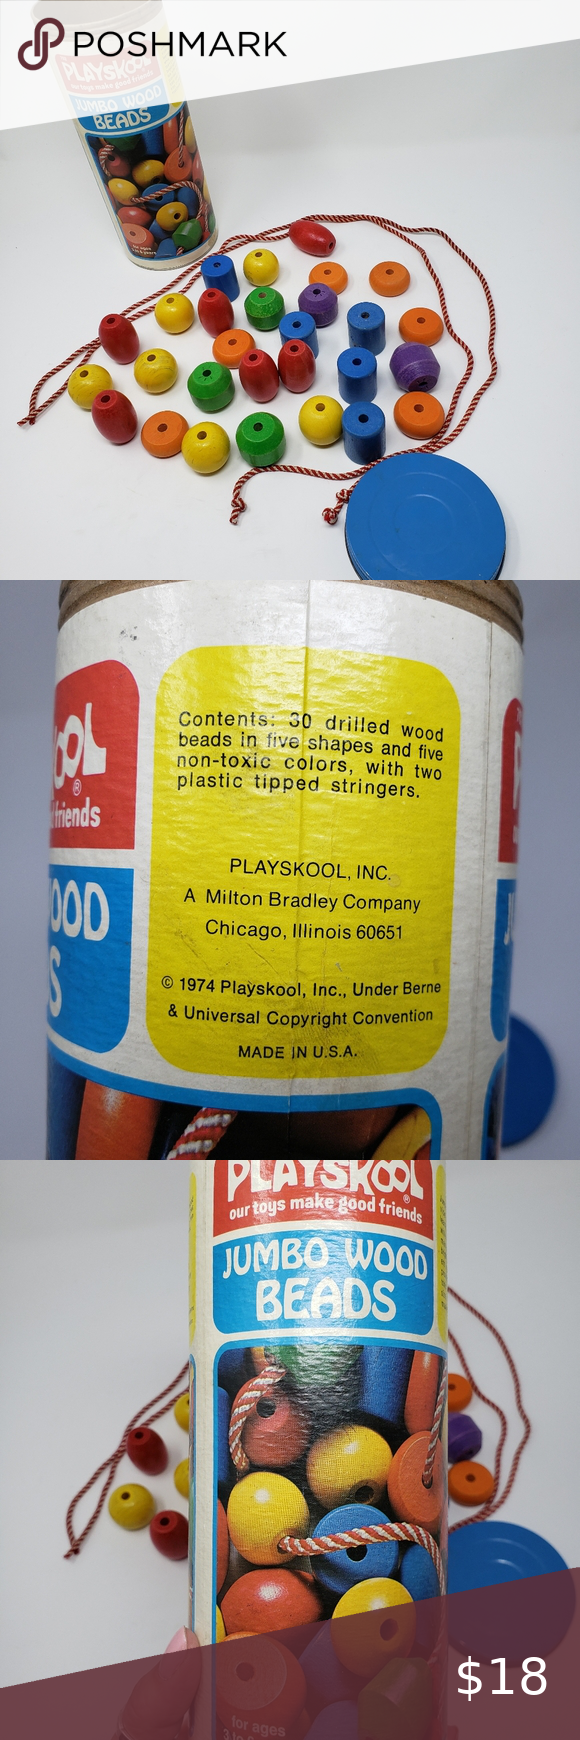 Playskool Wooden Beads